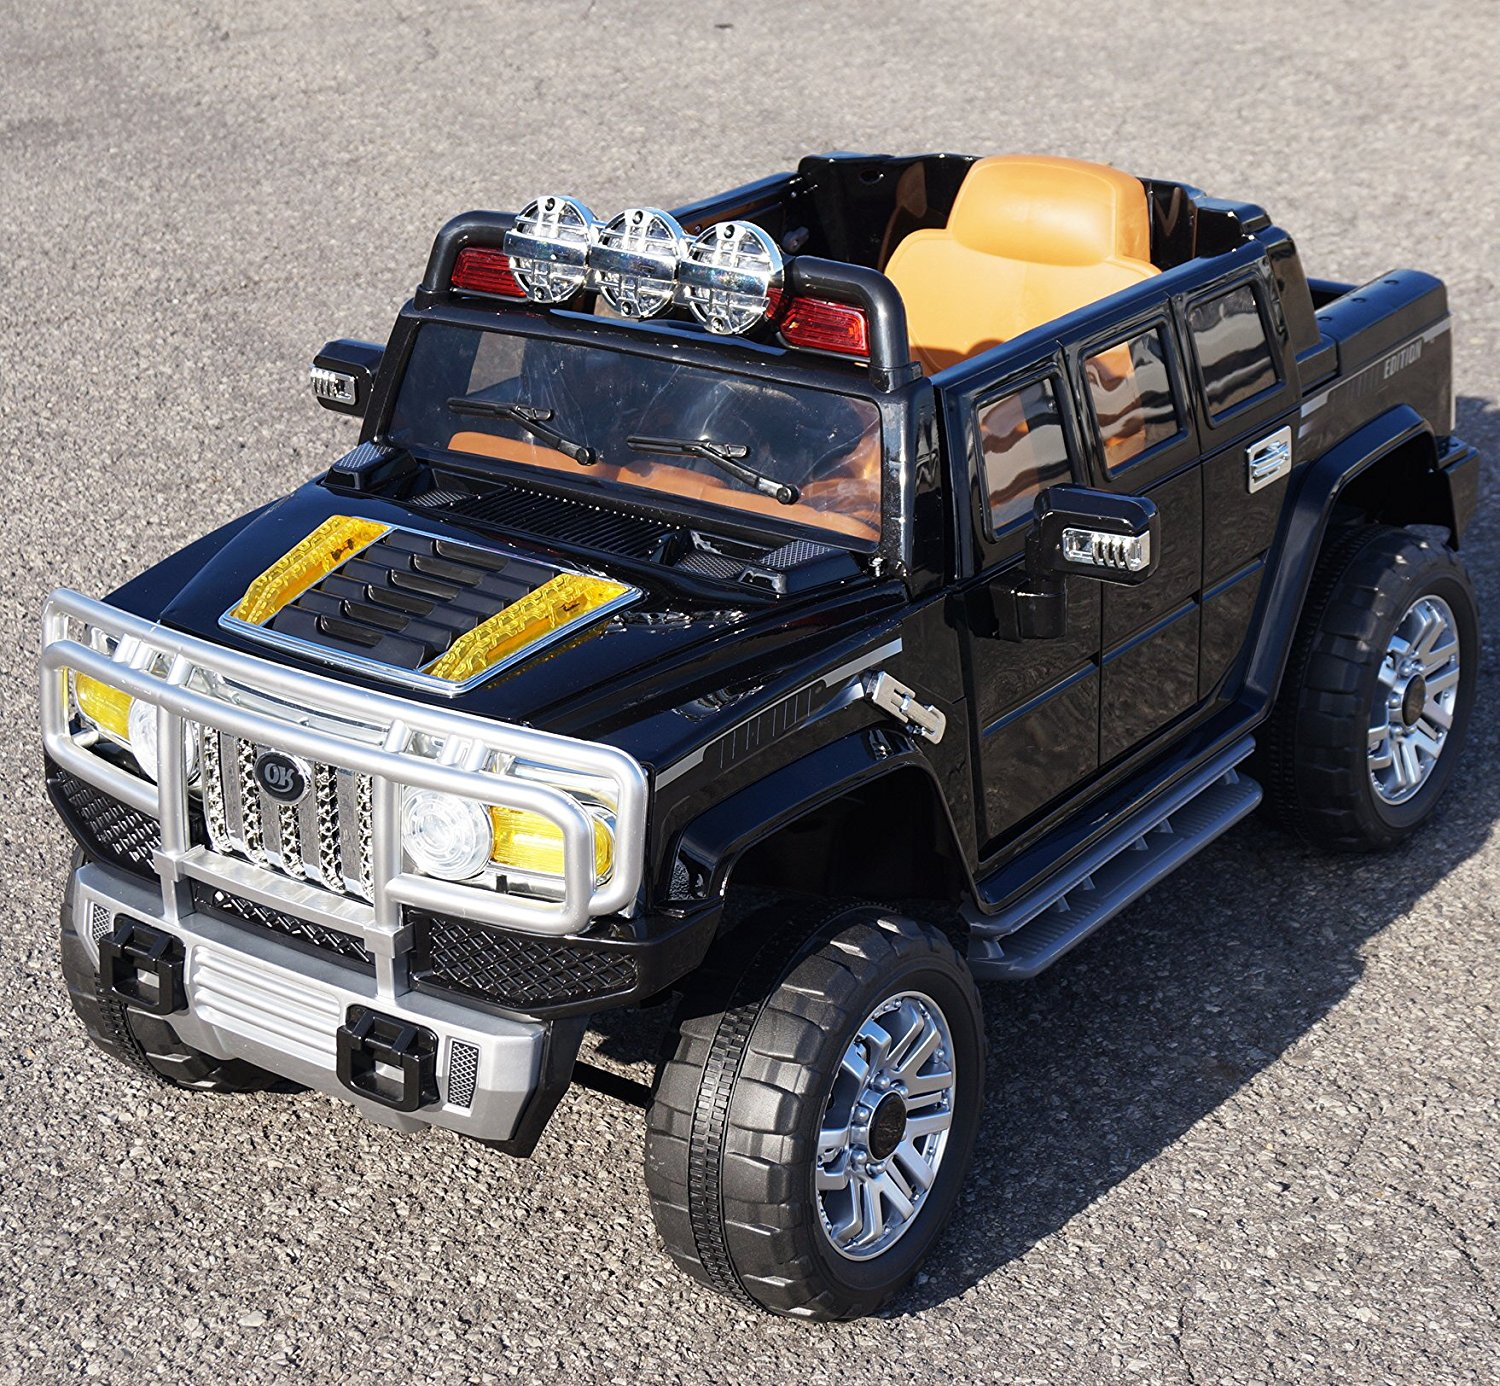 Ride on car HUMMER. Color - Black. Electric Vehicle. Battery Operated Ride On Car Toy With Remote Control (r/c). 2 speeds. Two electric motors, 12V. For kids 2-5 years. Electric car to drive.